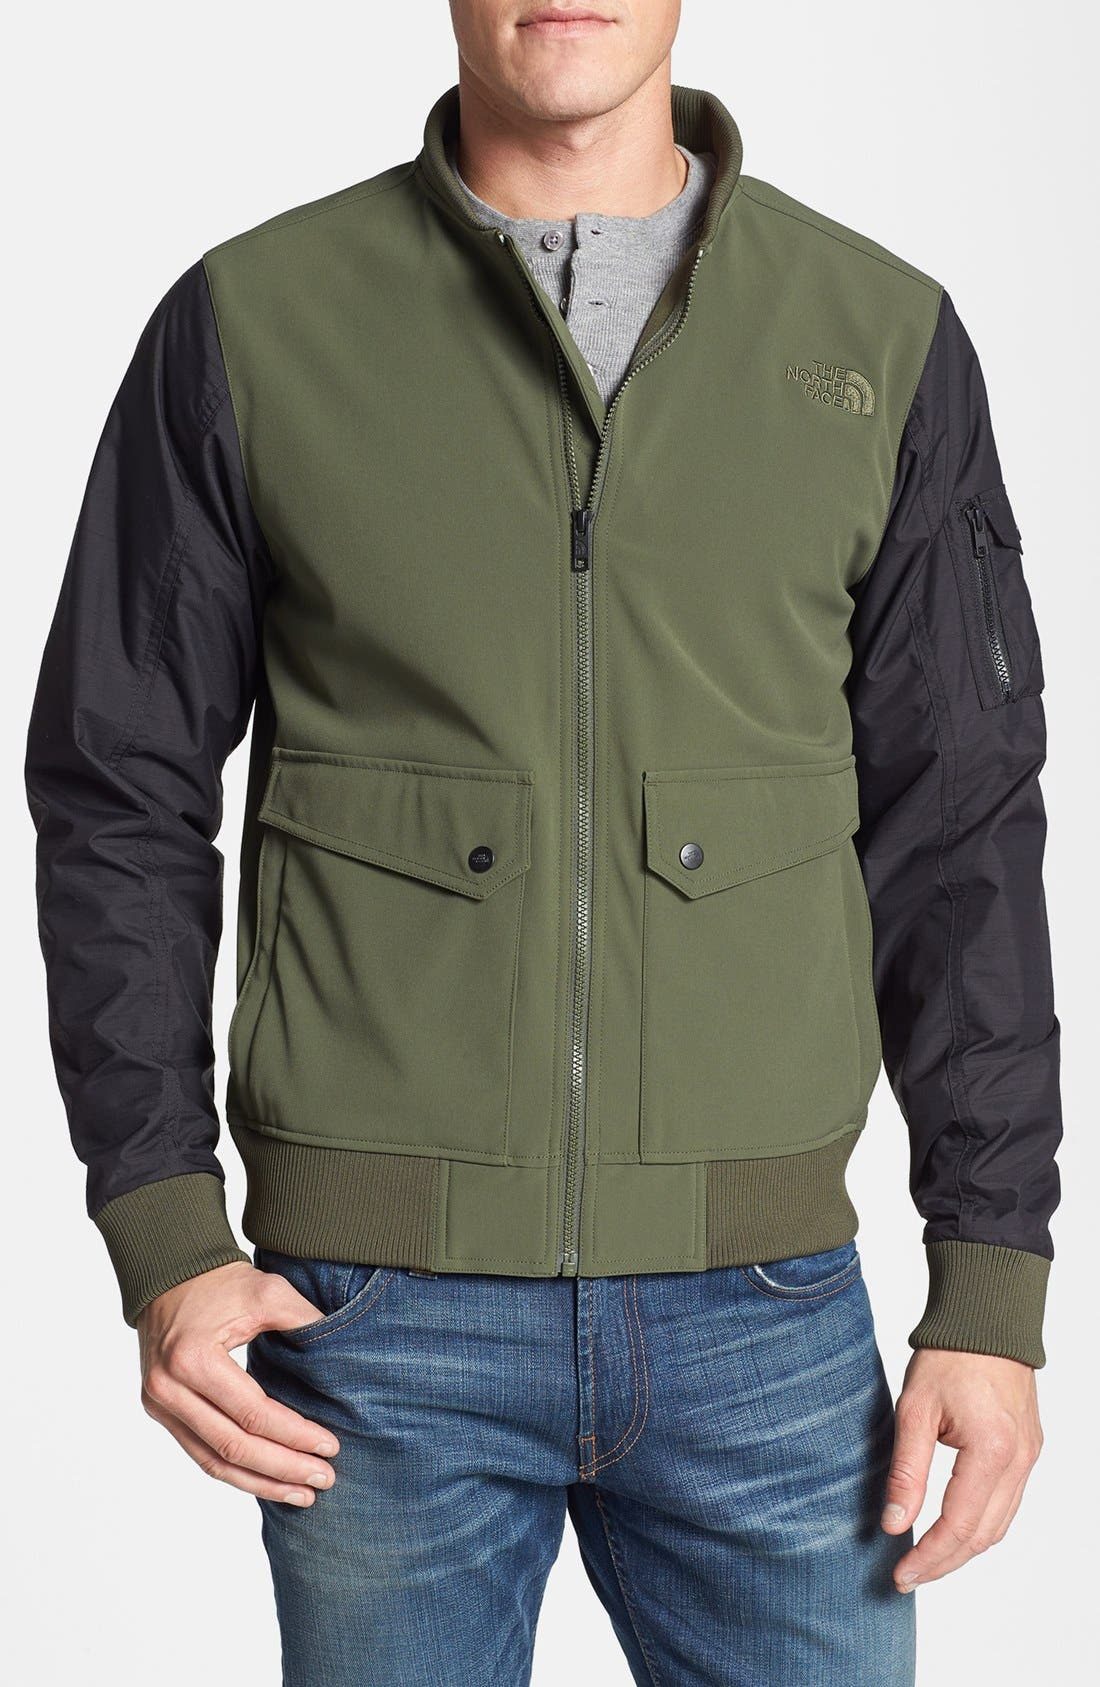 Alternate Image 1 Selected - The North Face 'Amos' Waterproof Bomber Jacket